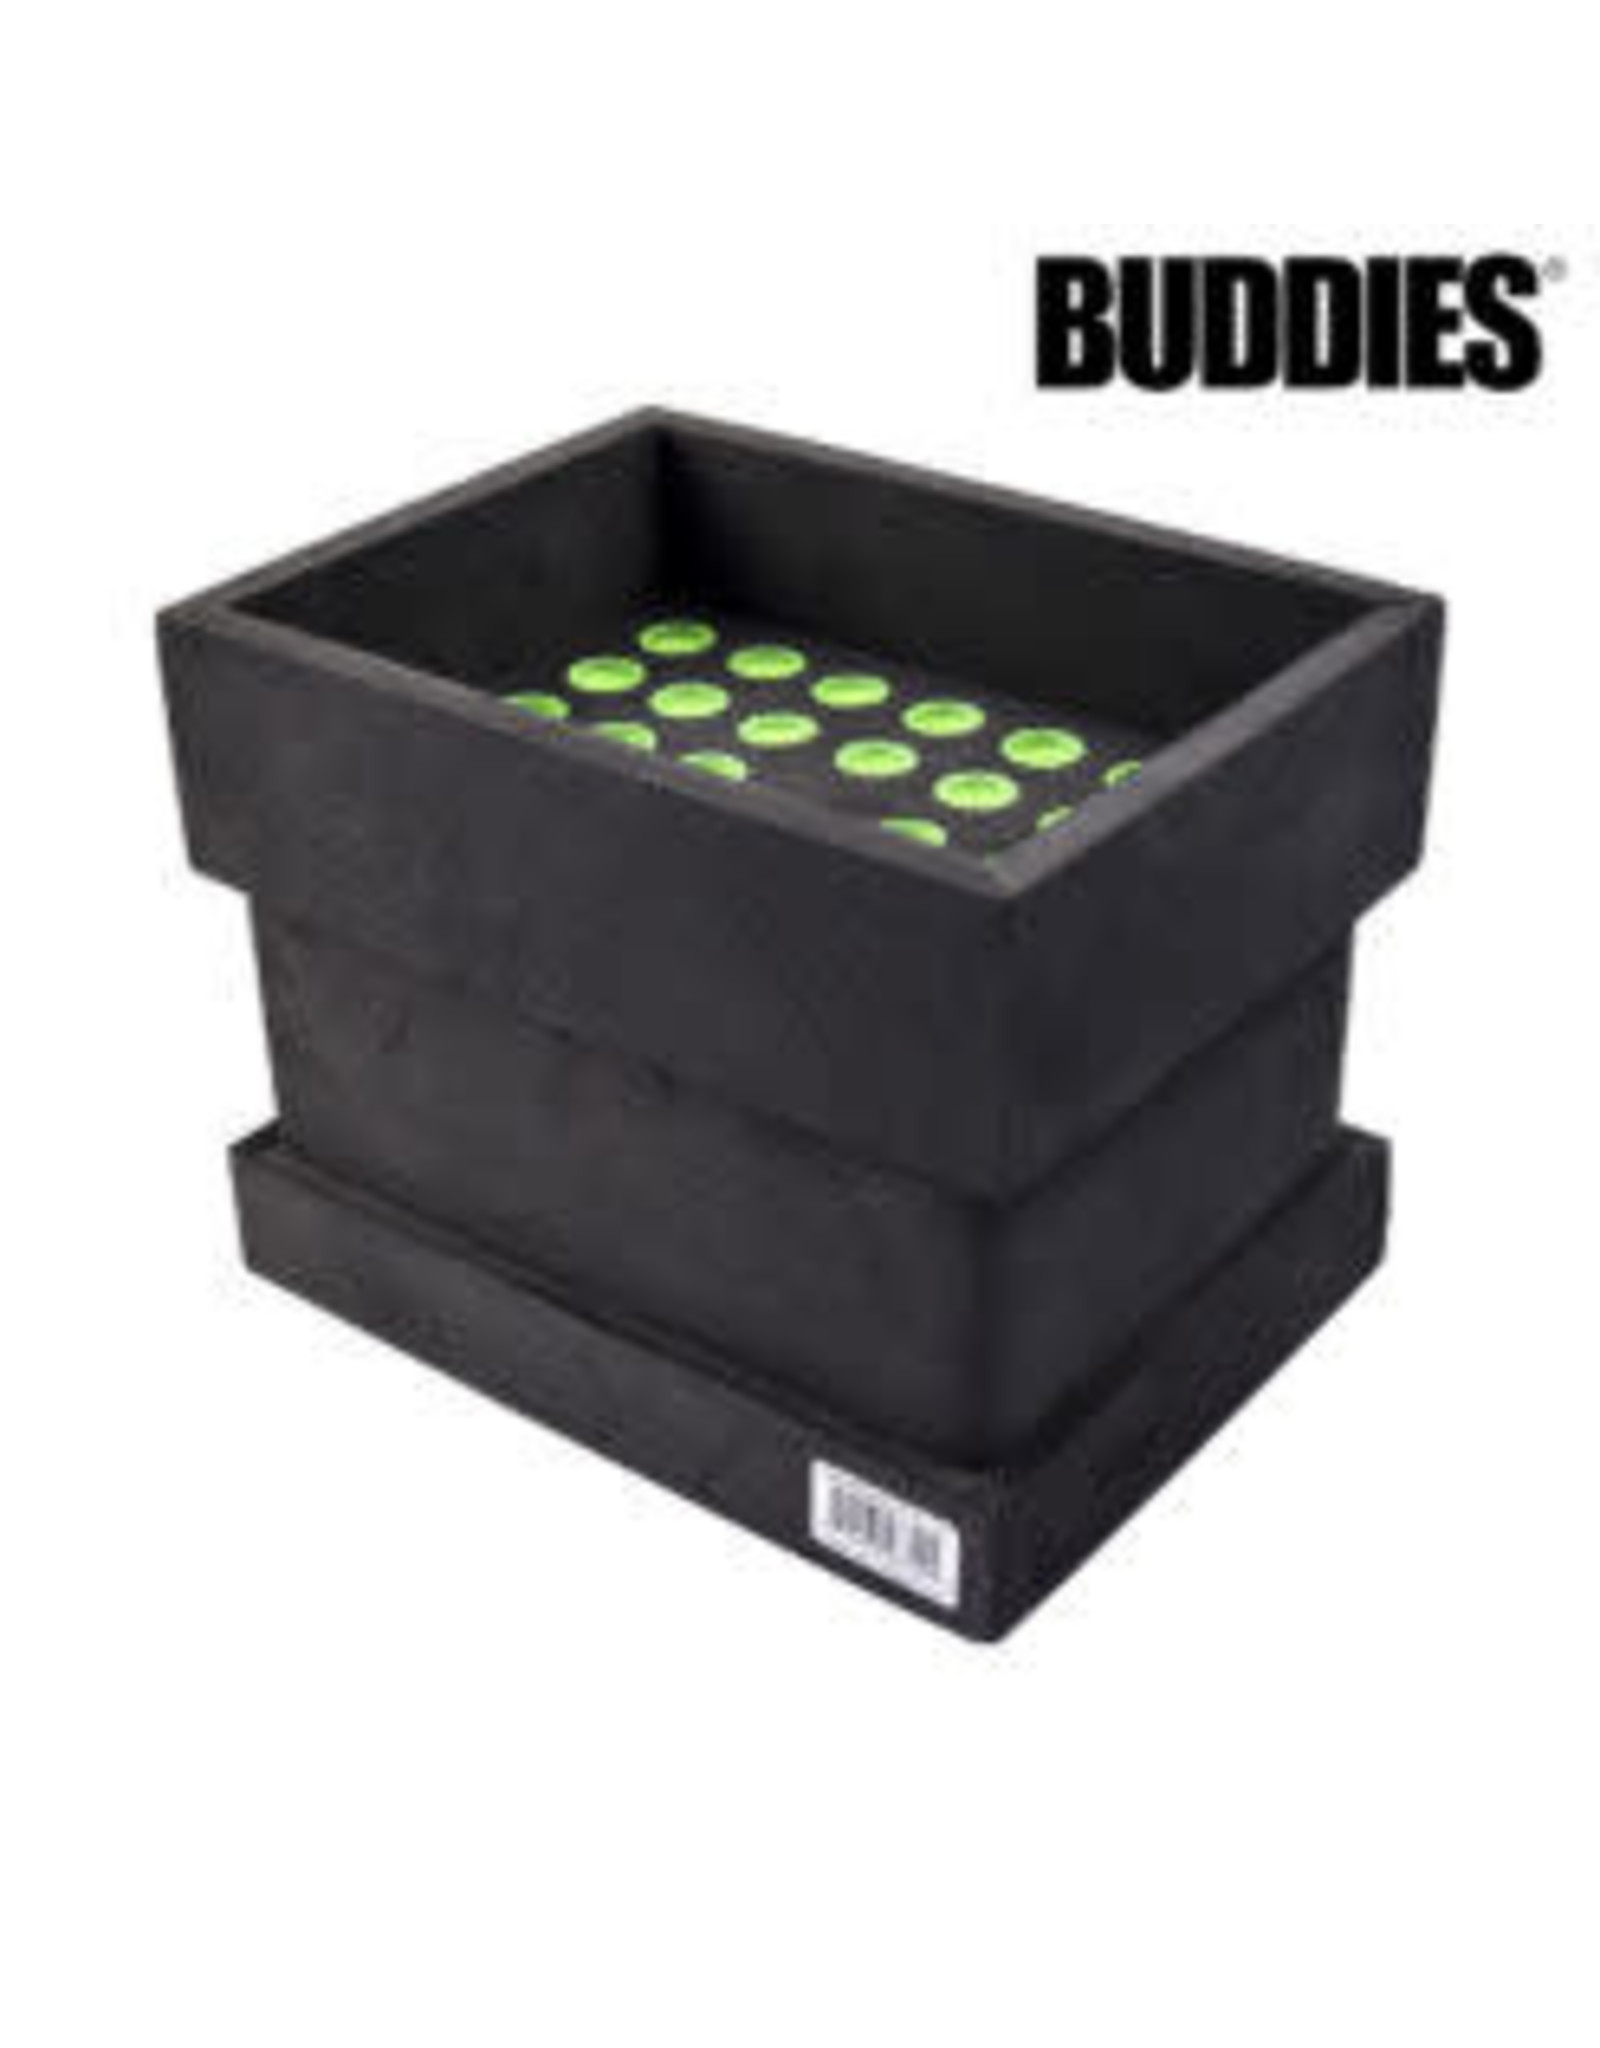 BUDDIES BUDDIES BUMP BOX